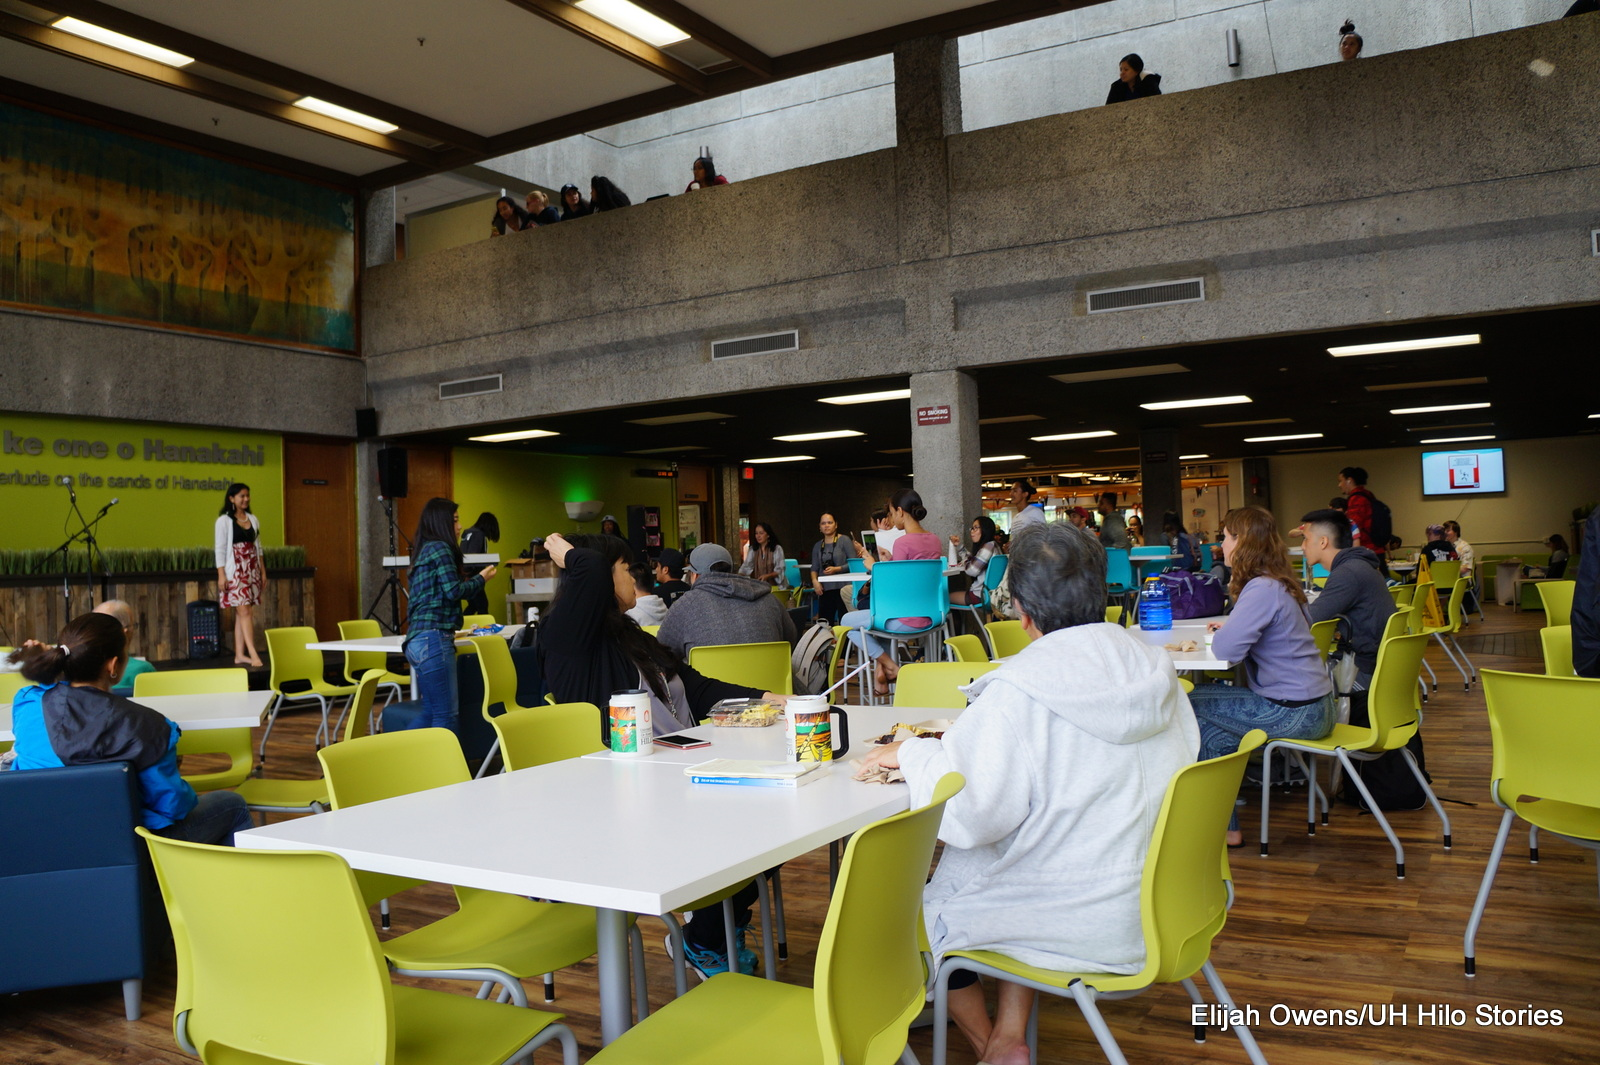 Venue, large dining room, people sitting at cafe tables.